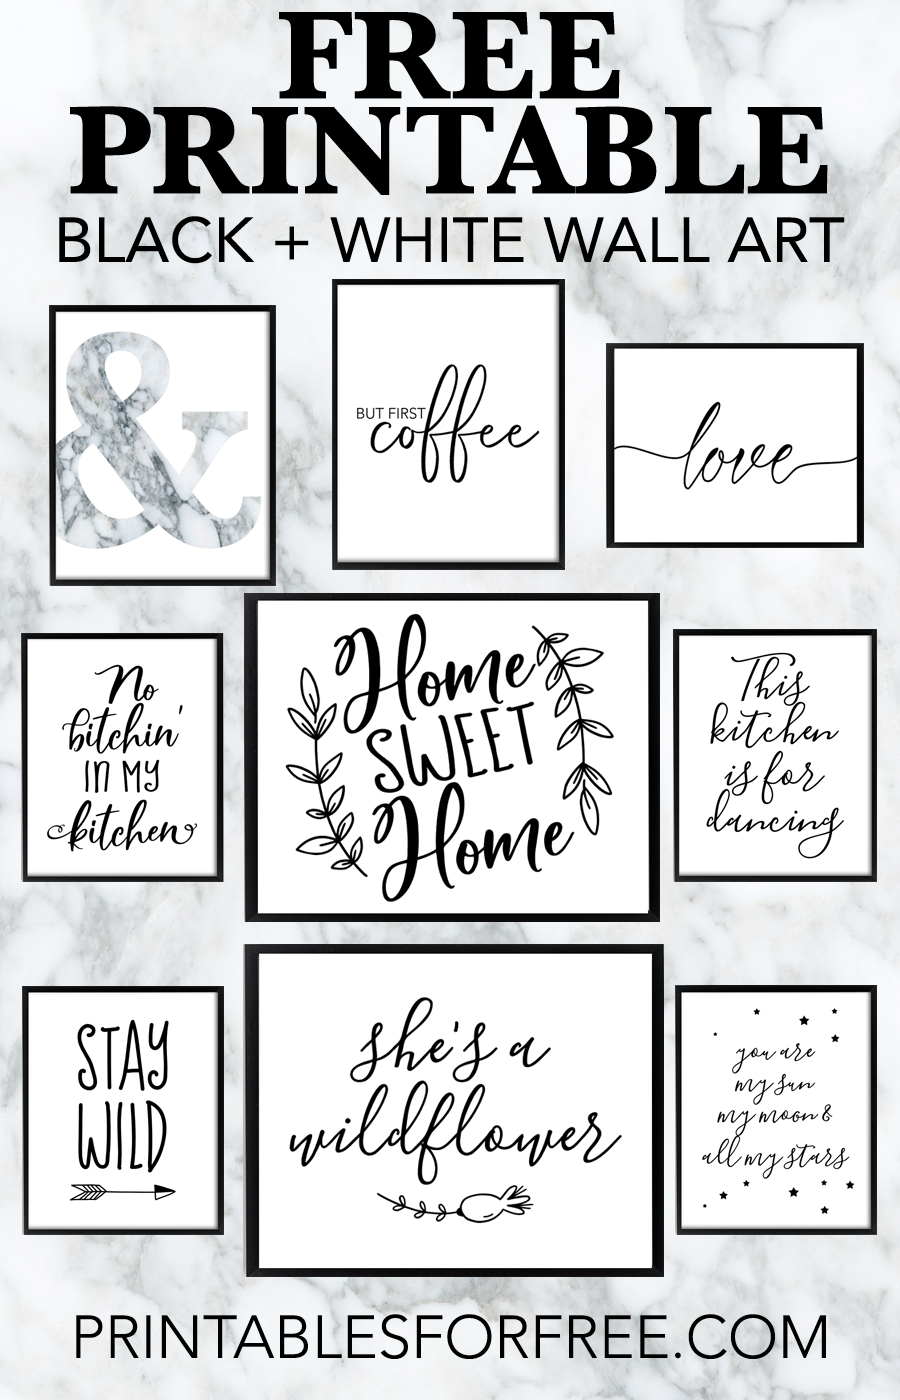 Free Printable Black And White Wall Art - Download And Print Your Ow - Free Printable Wall Art Black And White